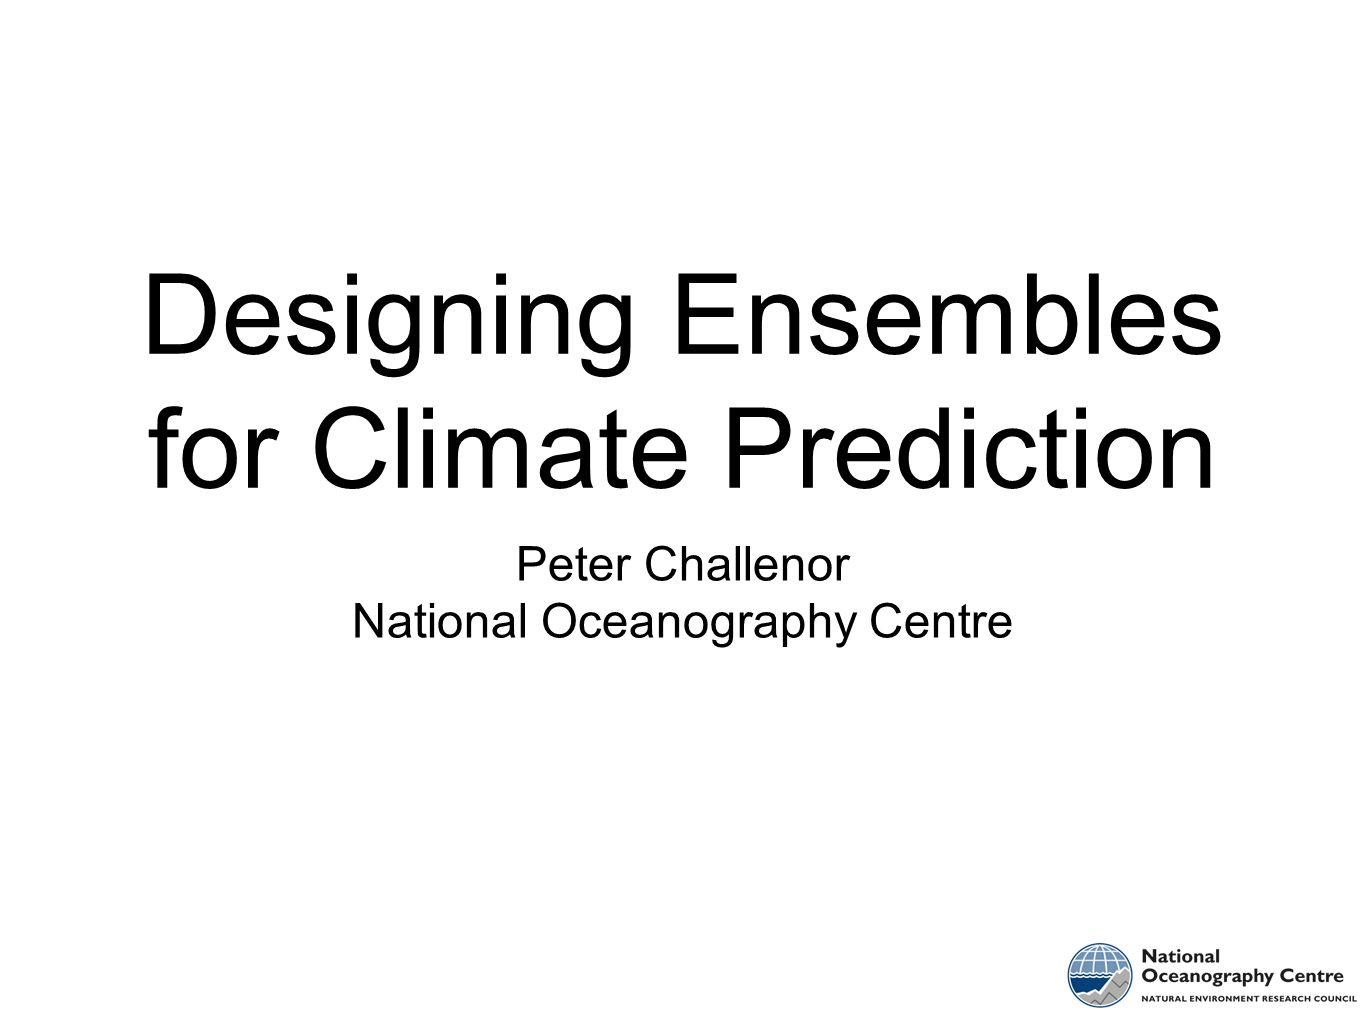 Designing Ensembles for Climate Prediction